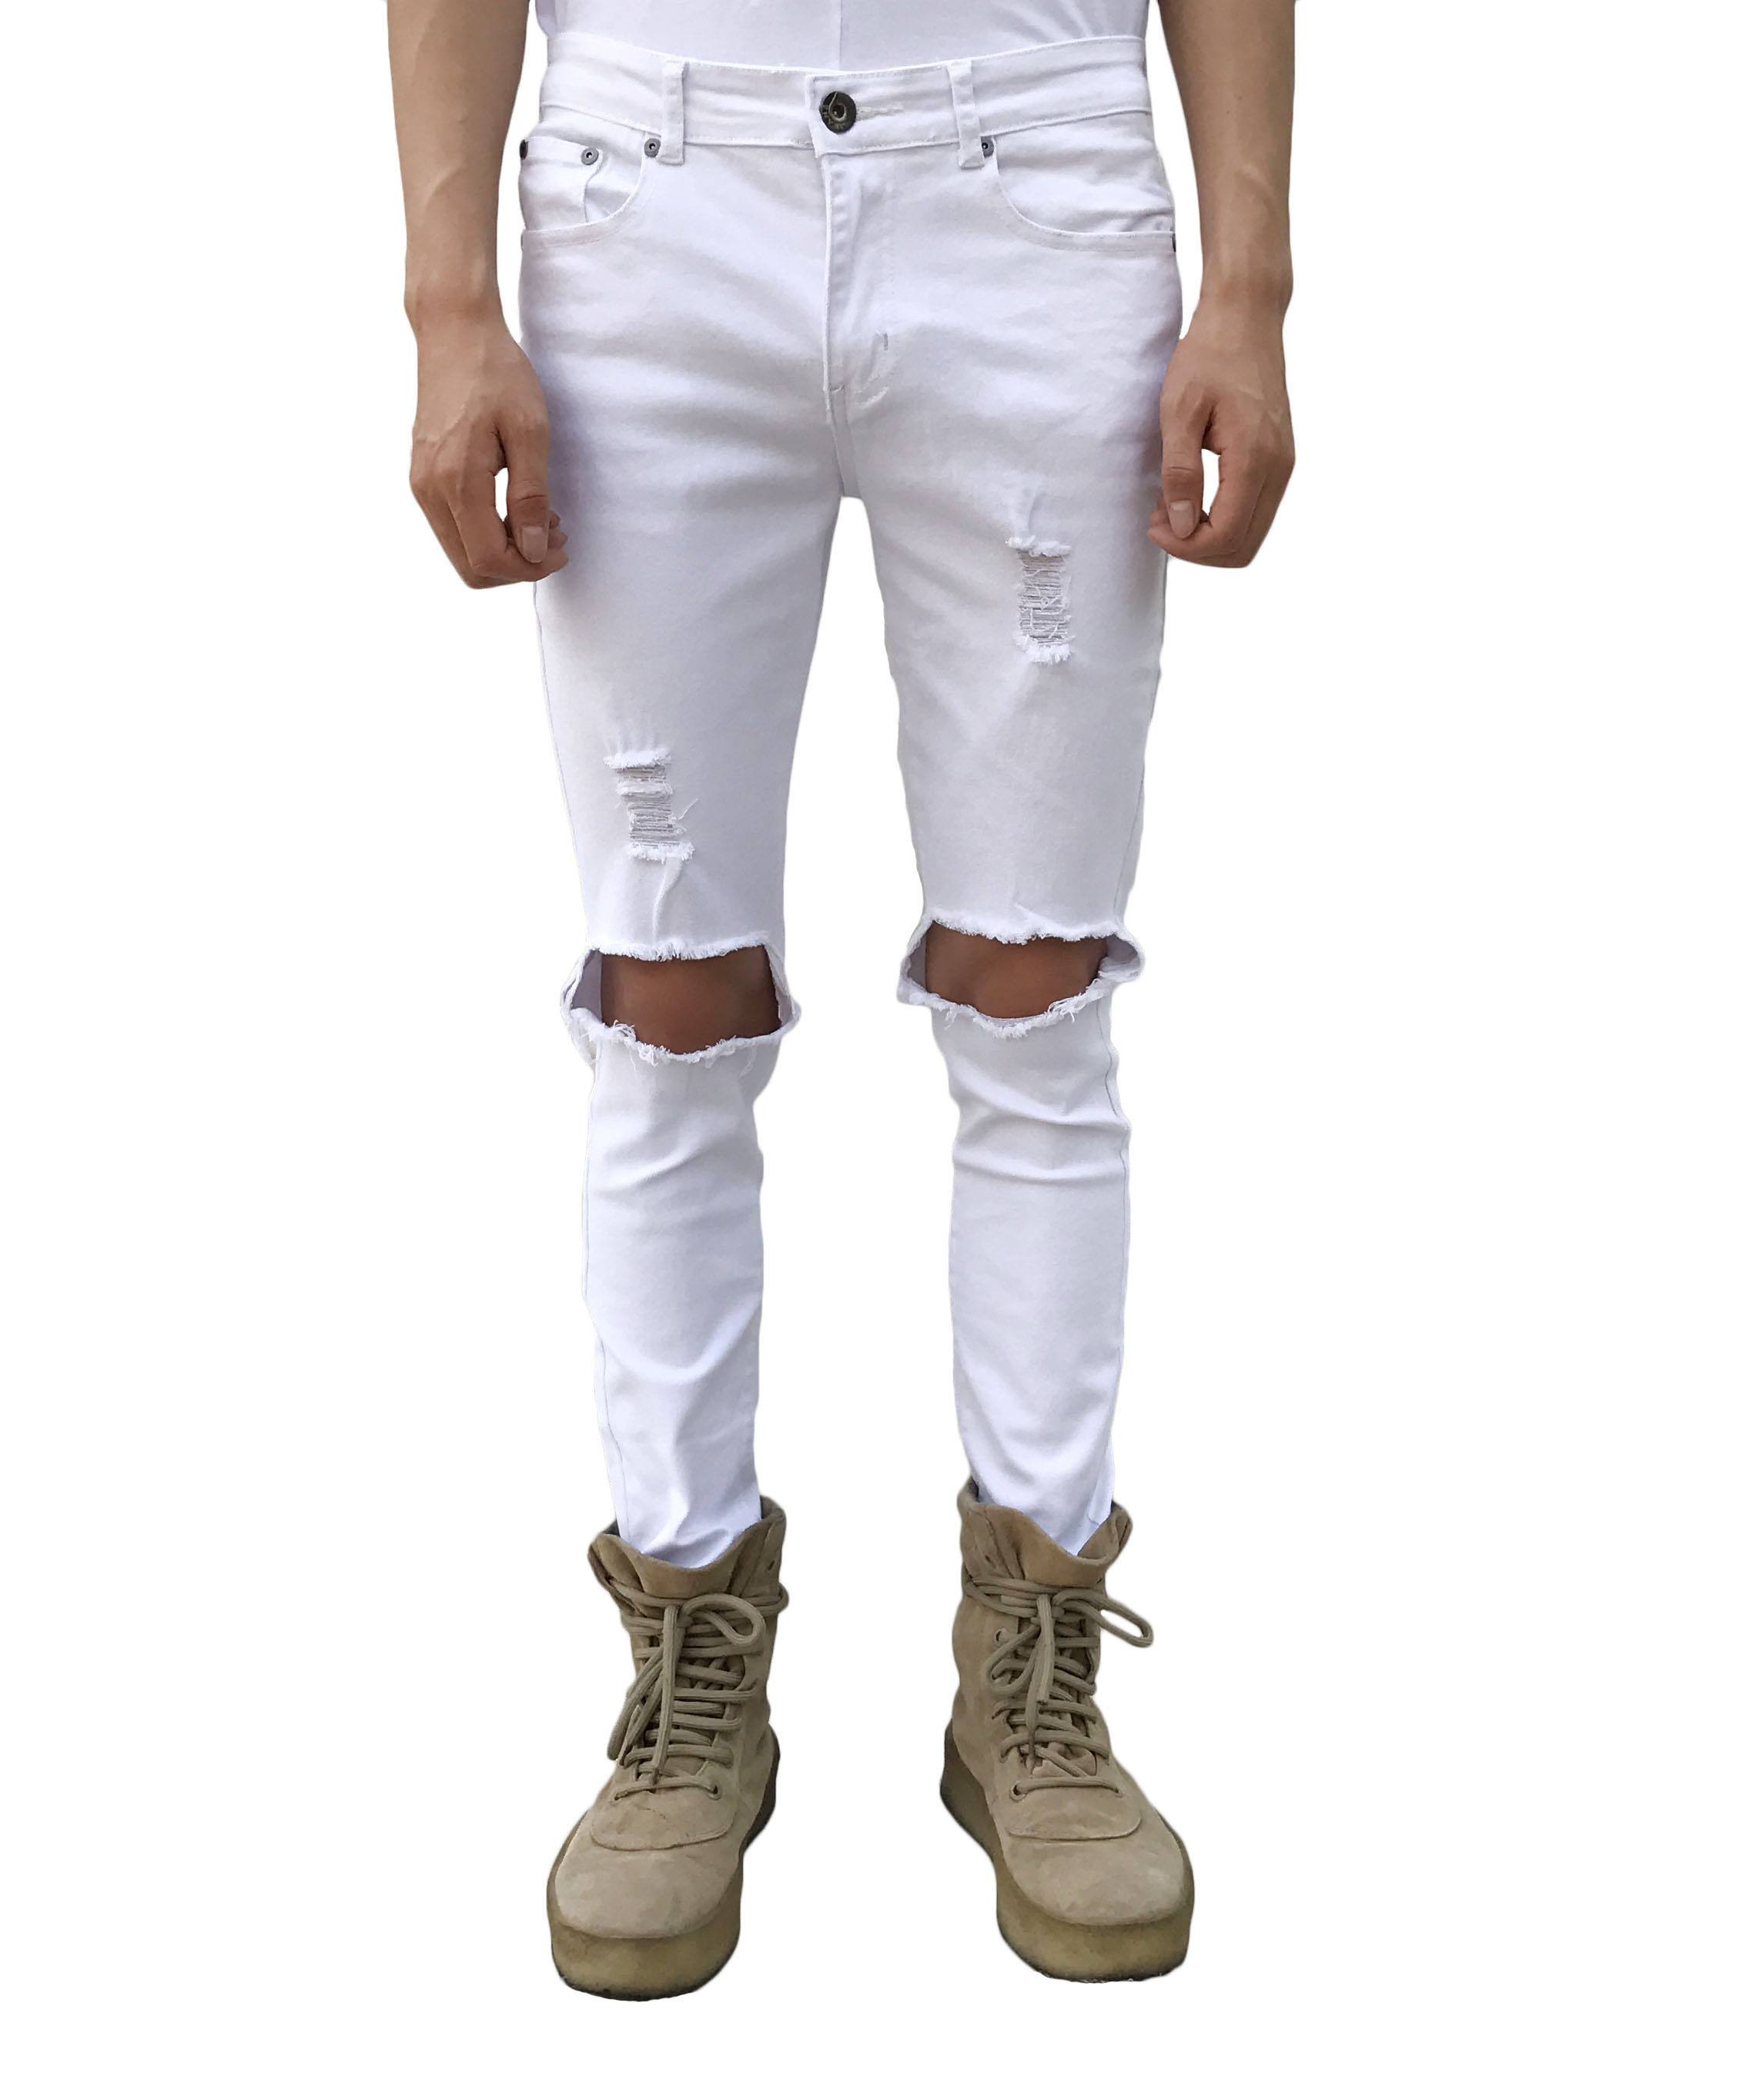 Blownout Jeans - White